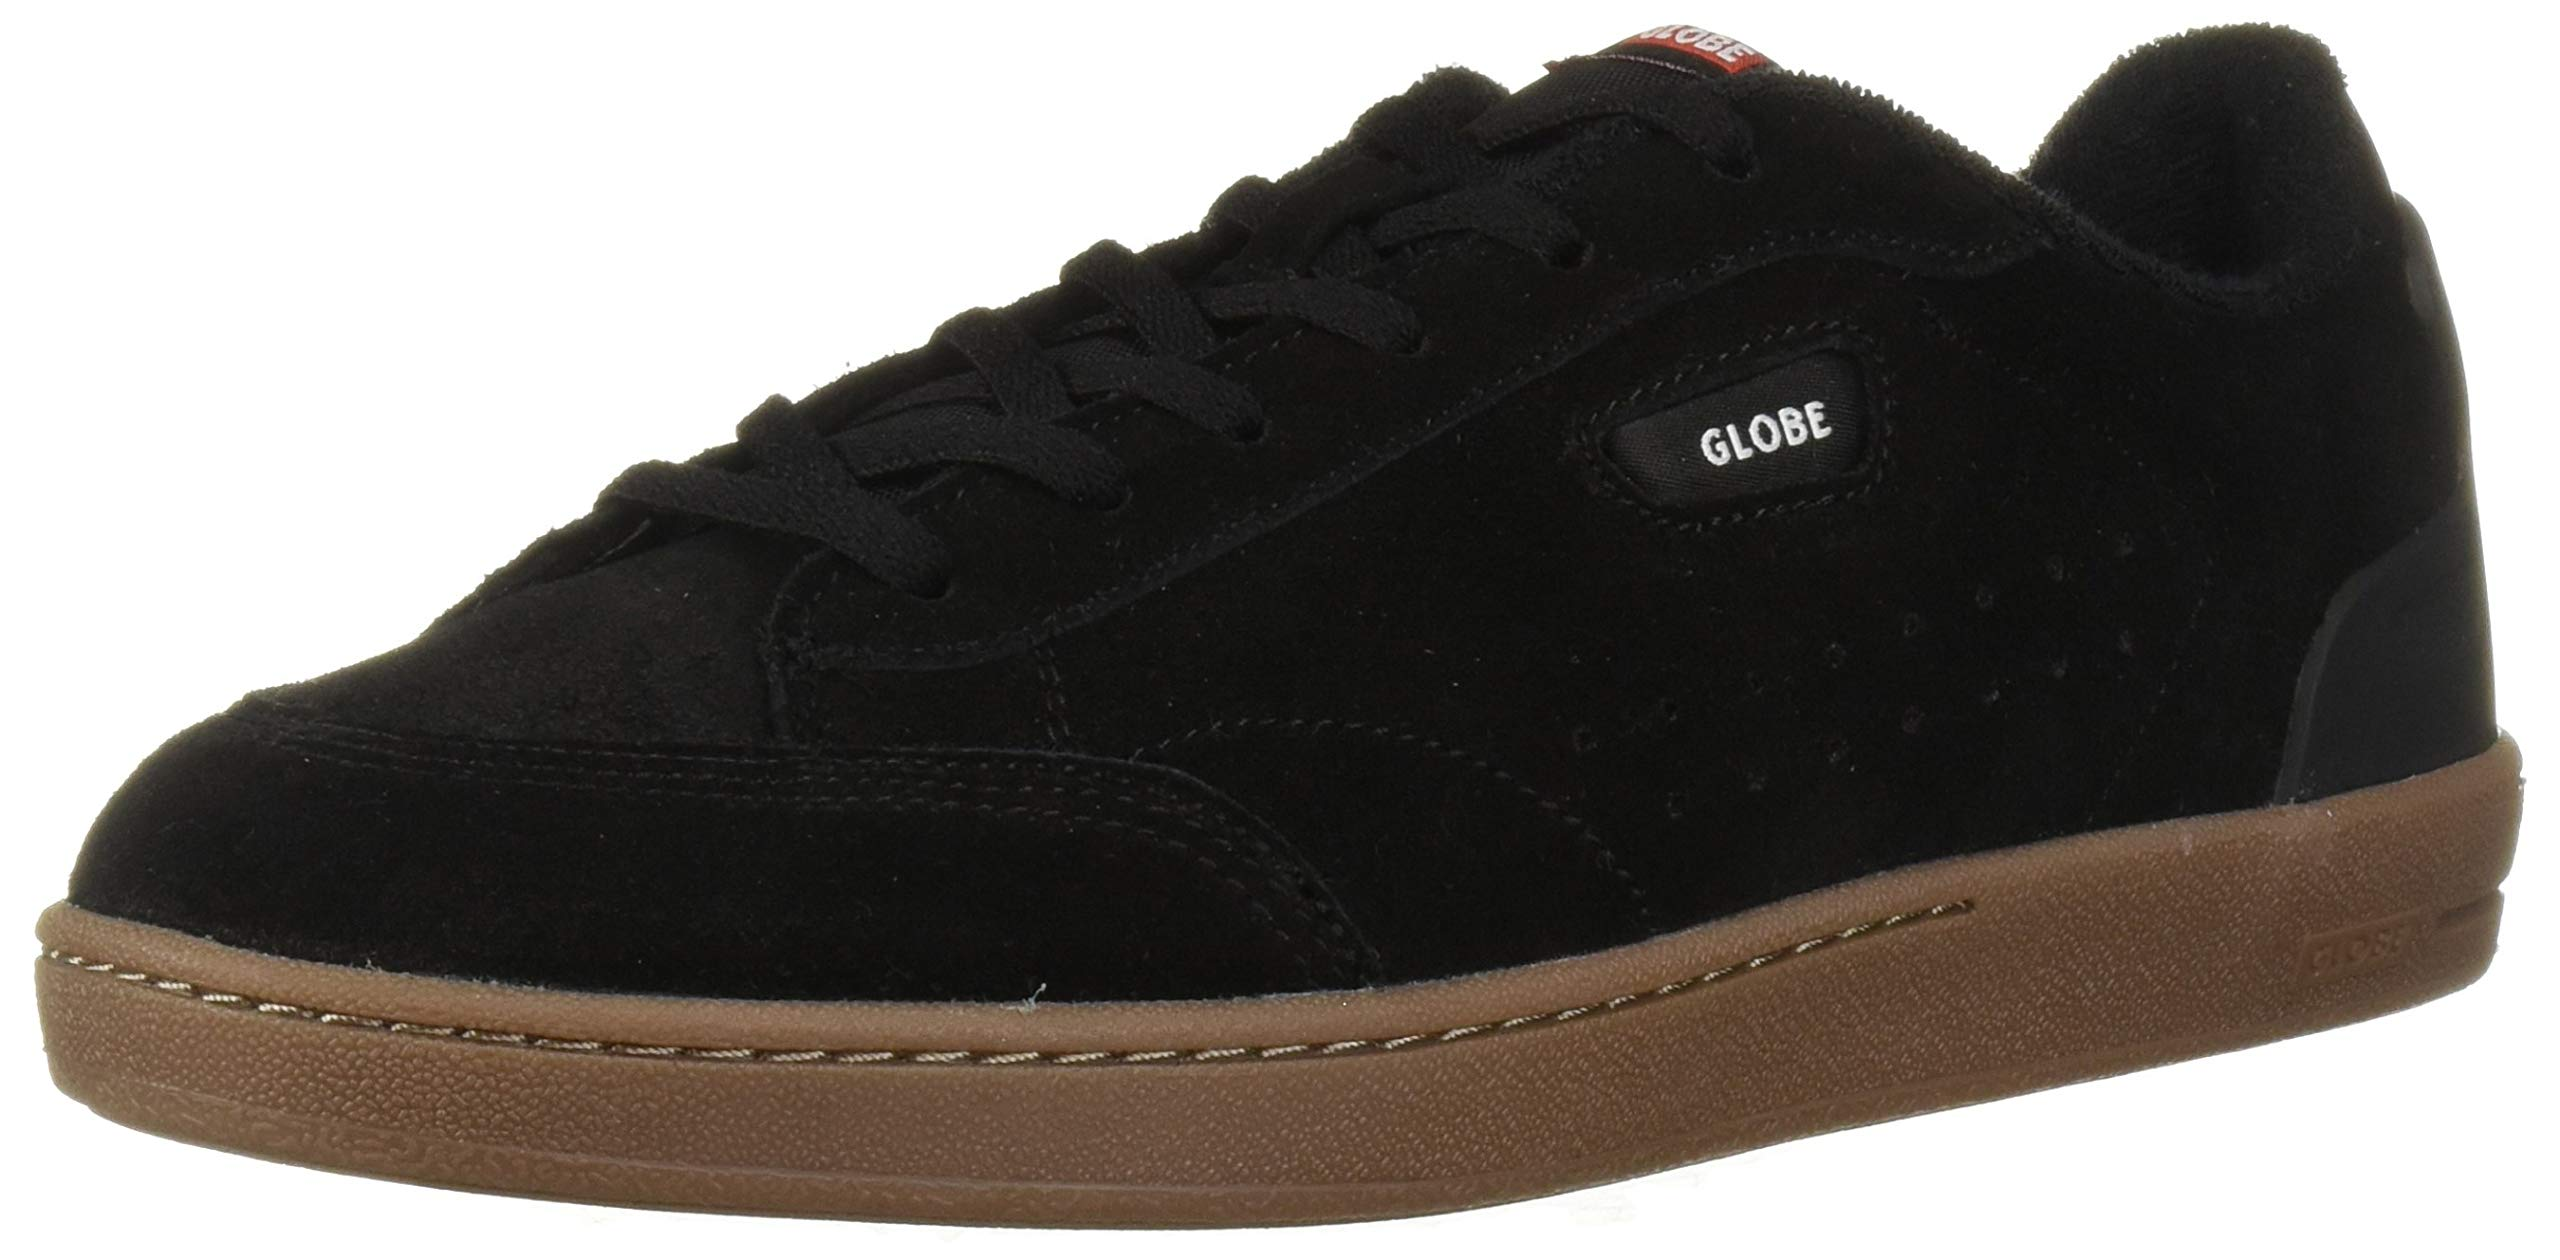 Globe Men's Sygma Skate Shoe Black/Gum 10.5 Medium US by Globe